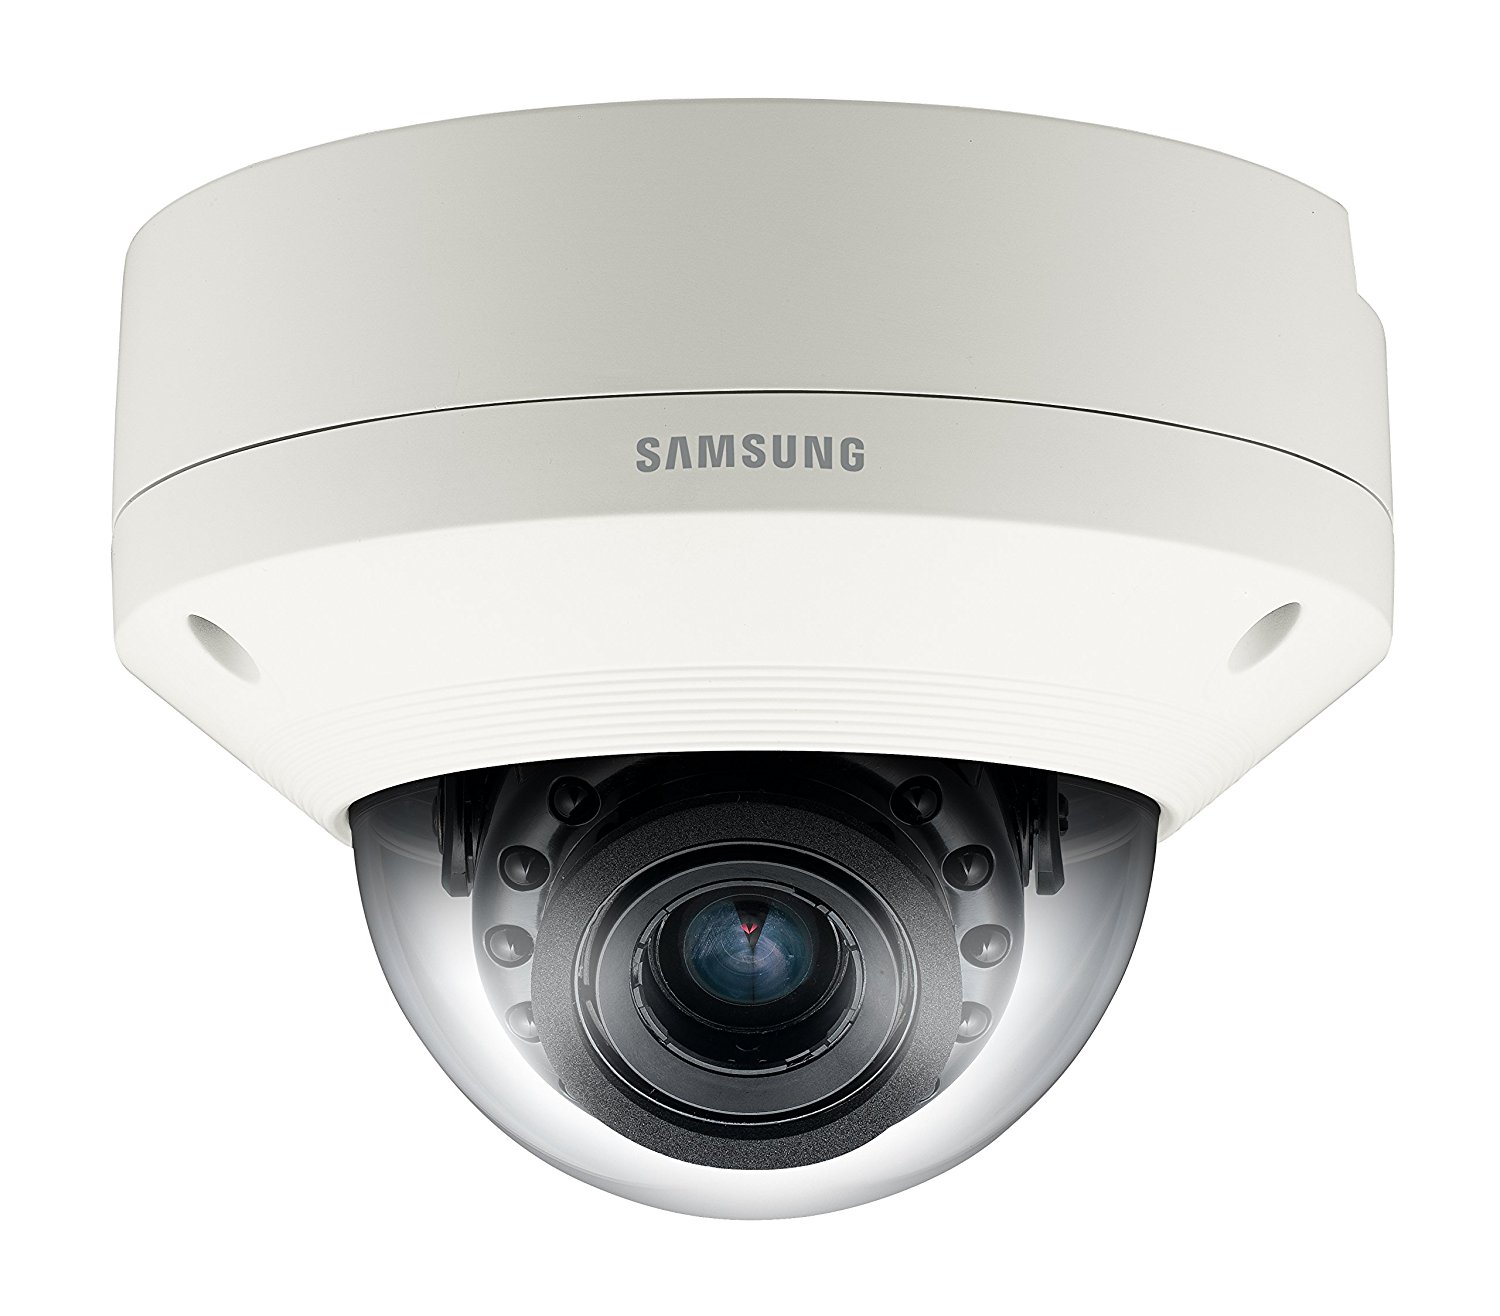 SNV-6084R  FULL HD 2Megapixel Full HD Network IR Vandal-Resis